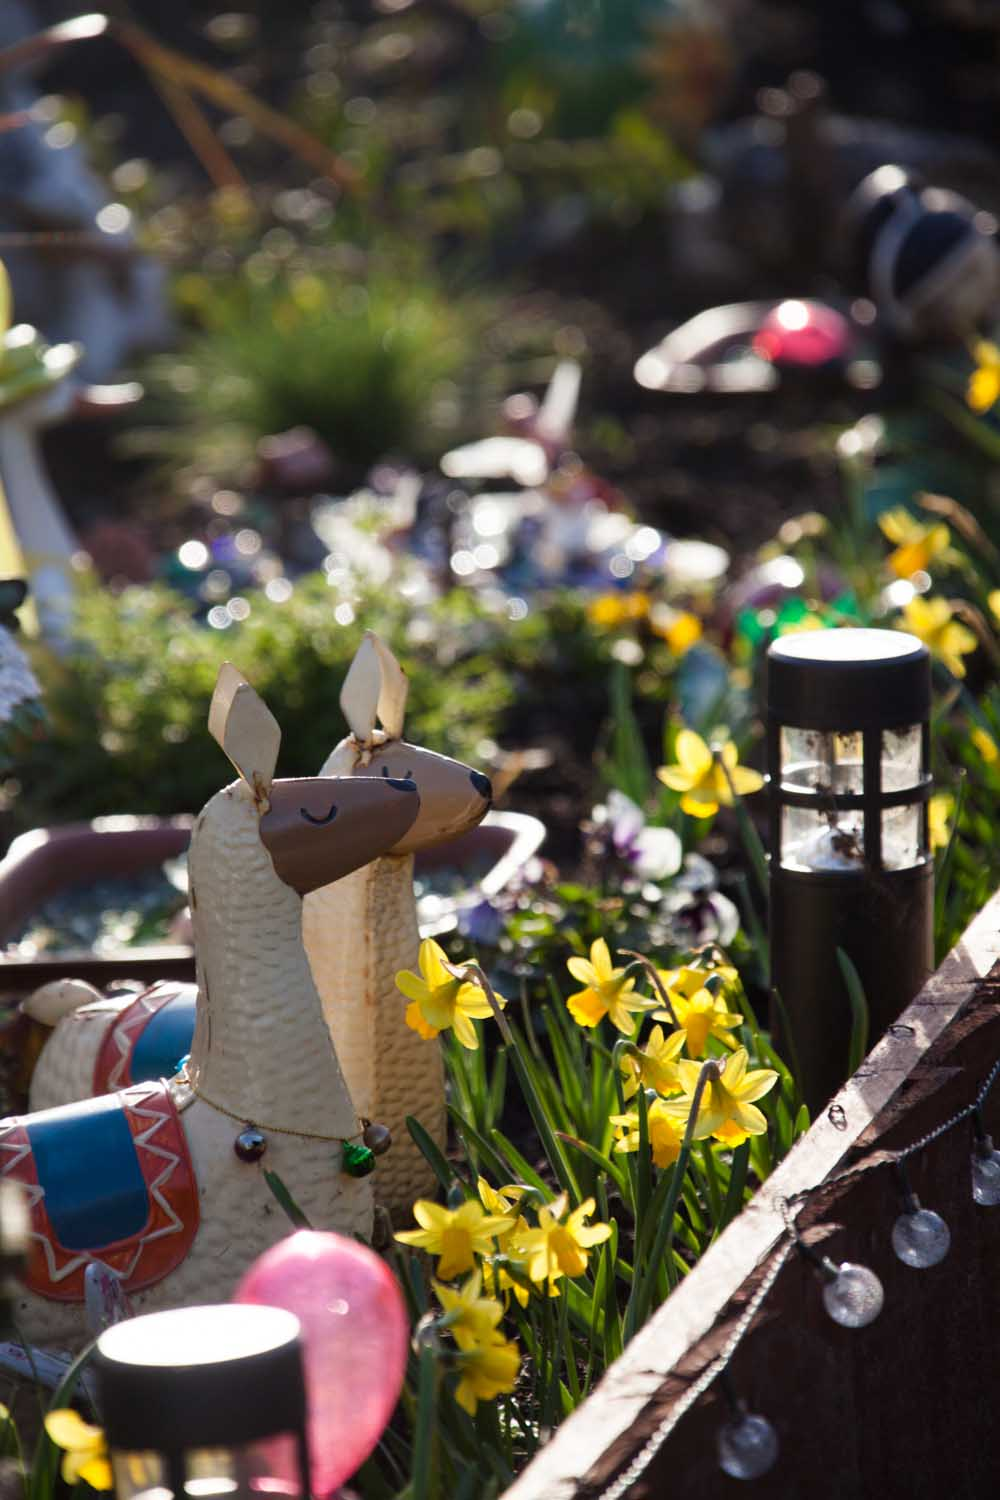 Picturesque spring view of a decorated garden front on Brassey's Contract Road, in the Cheshire parish of Edge.